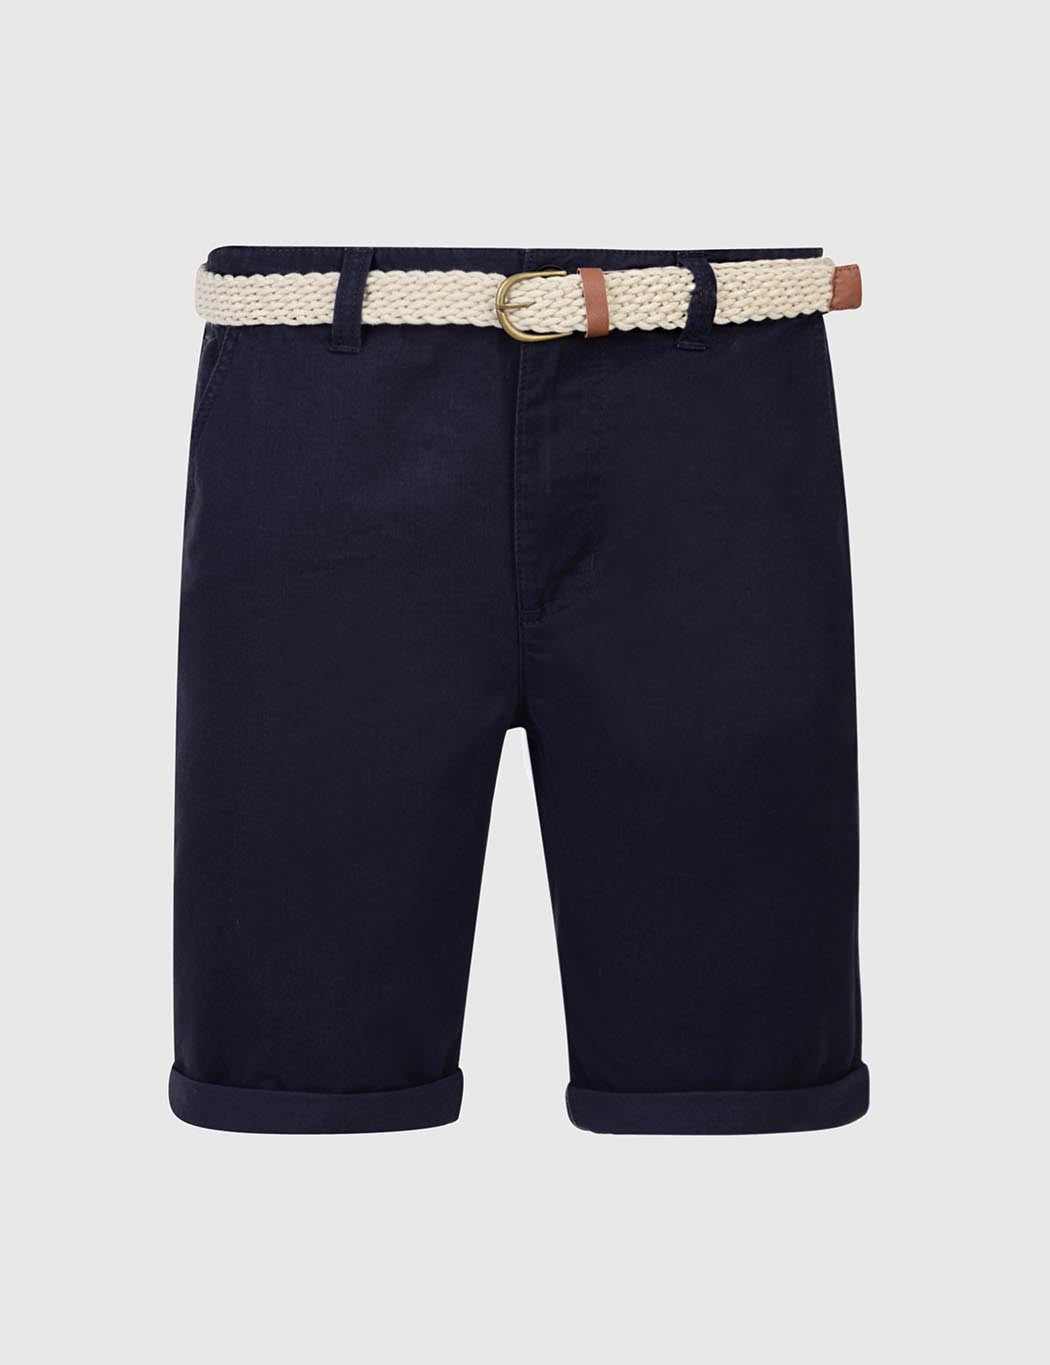 Bellfield Francis Chino Shorts - Navy Blue